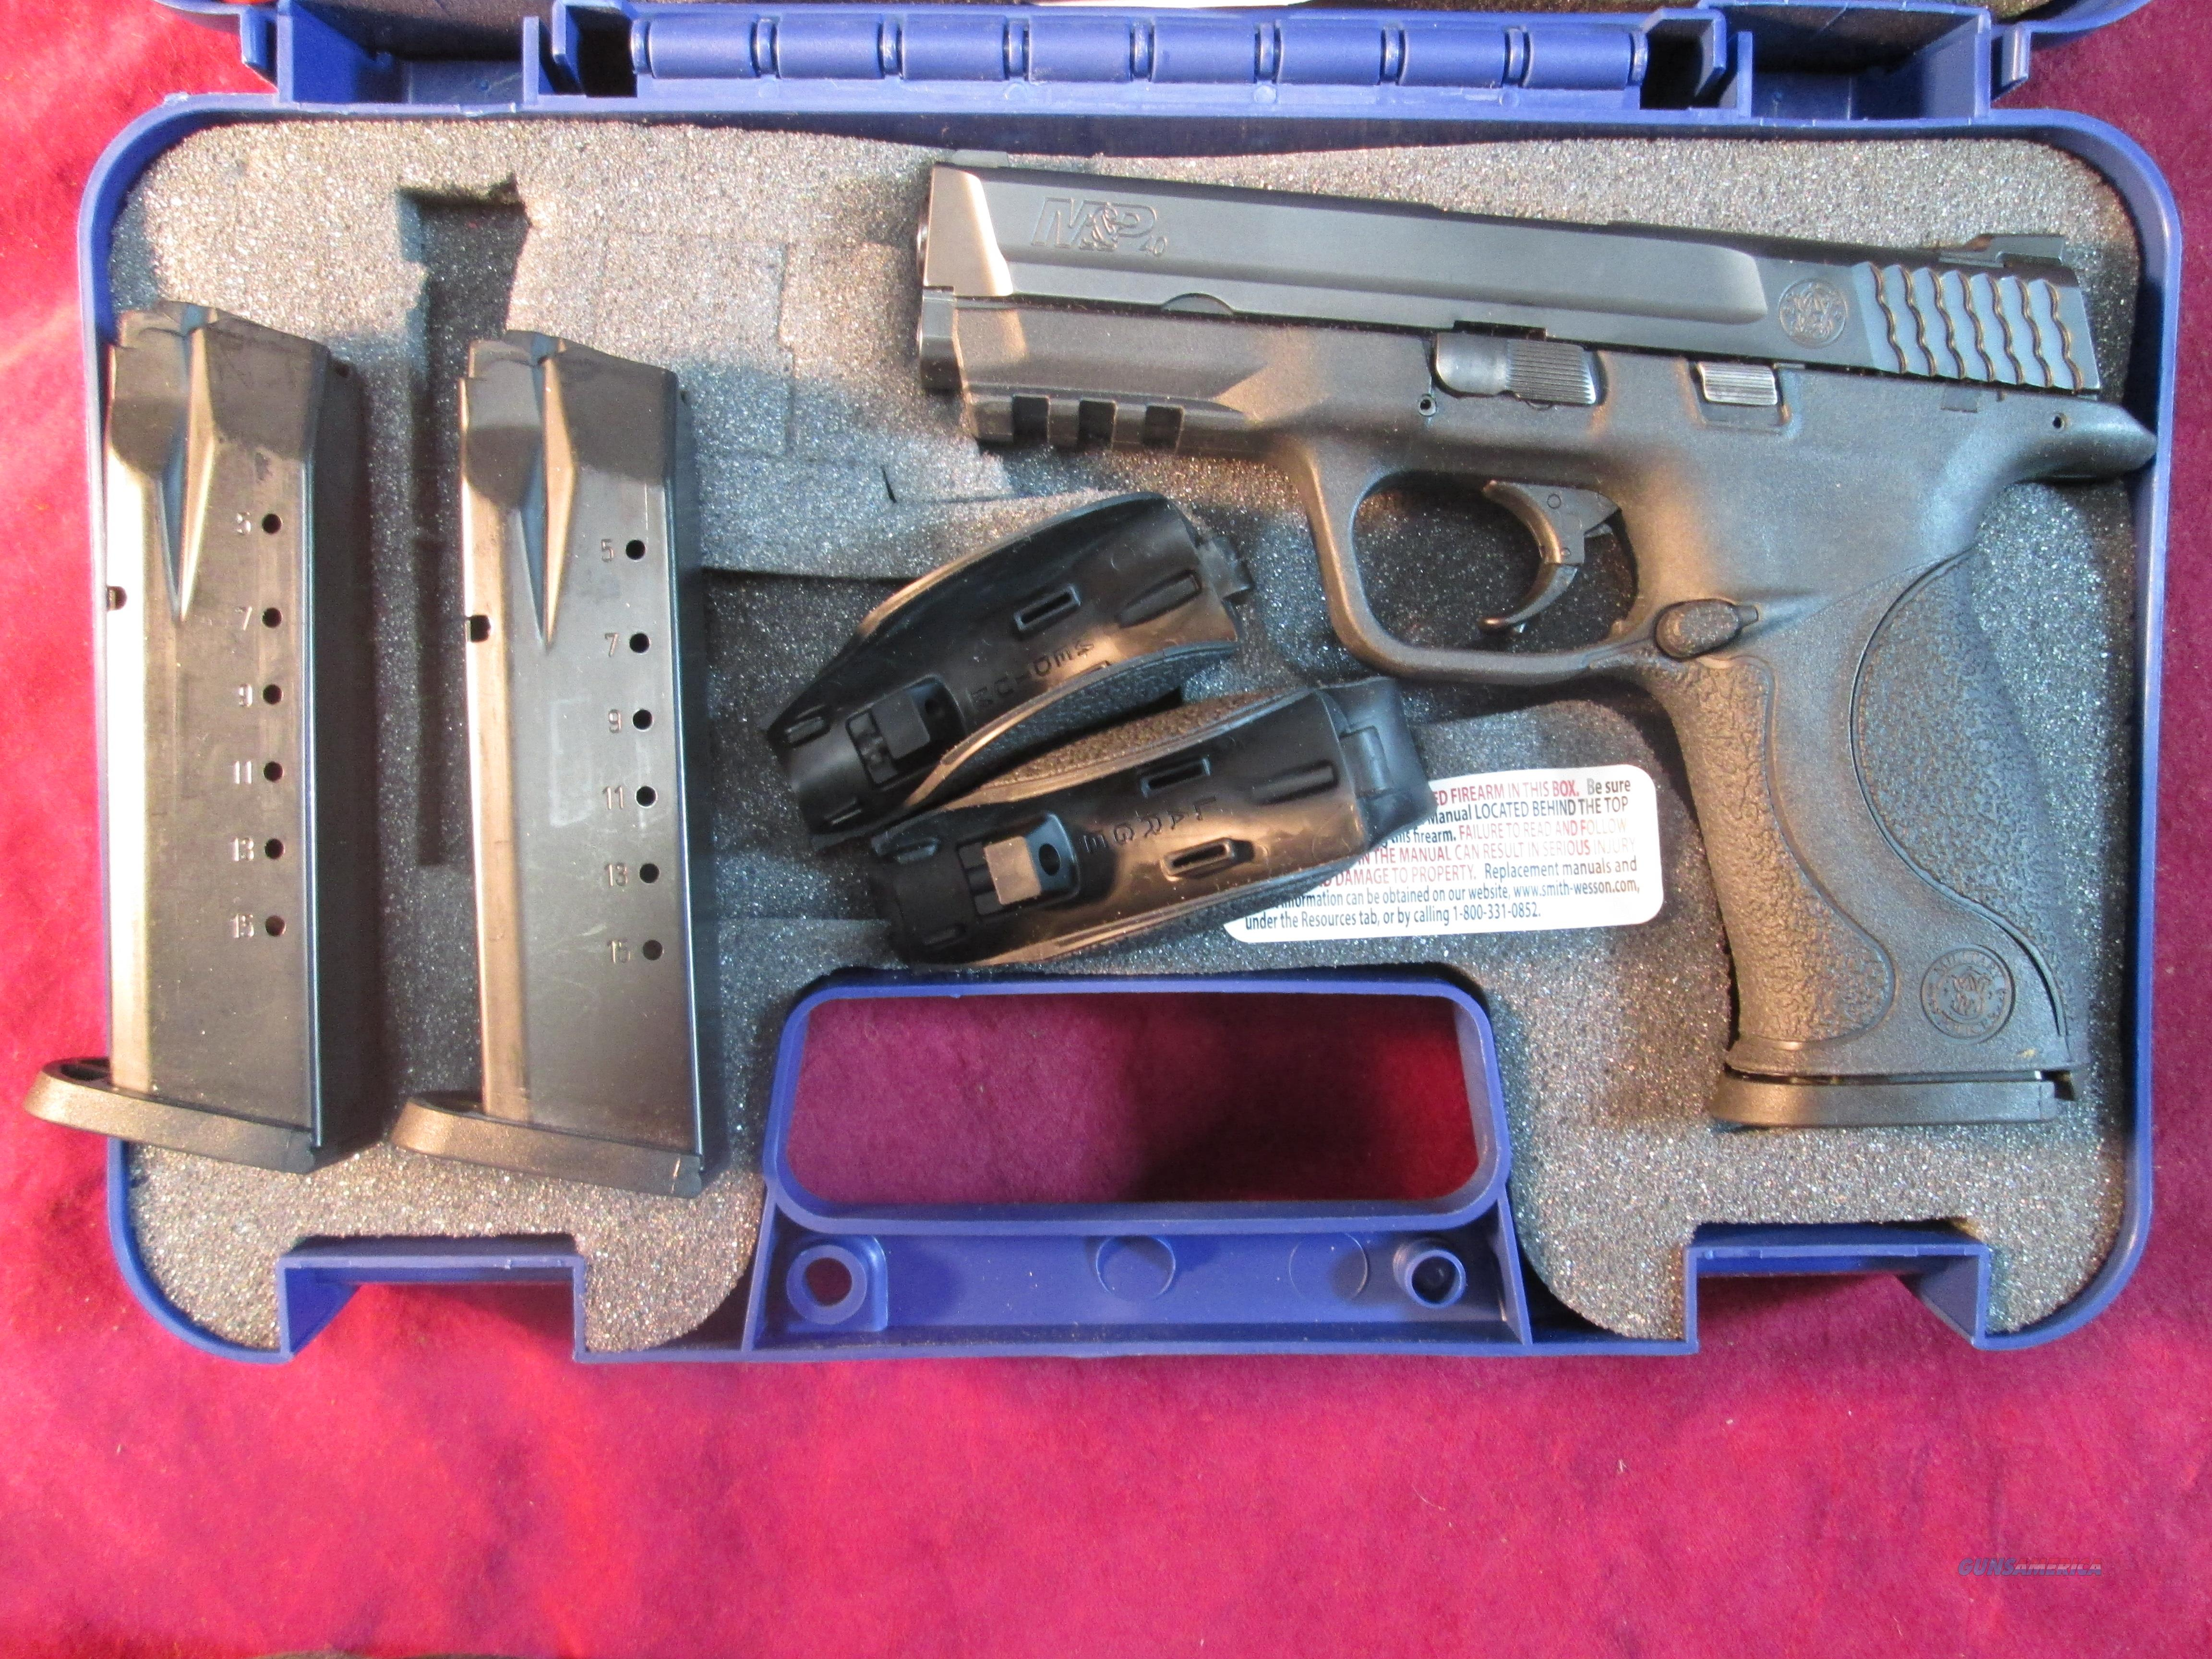 SMITH AND WESSON M&P 40CAL W/ 3 MAGS USED  Guns > Pistols > Smith & Wesson Pistols - Autos > Polymer Frame